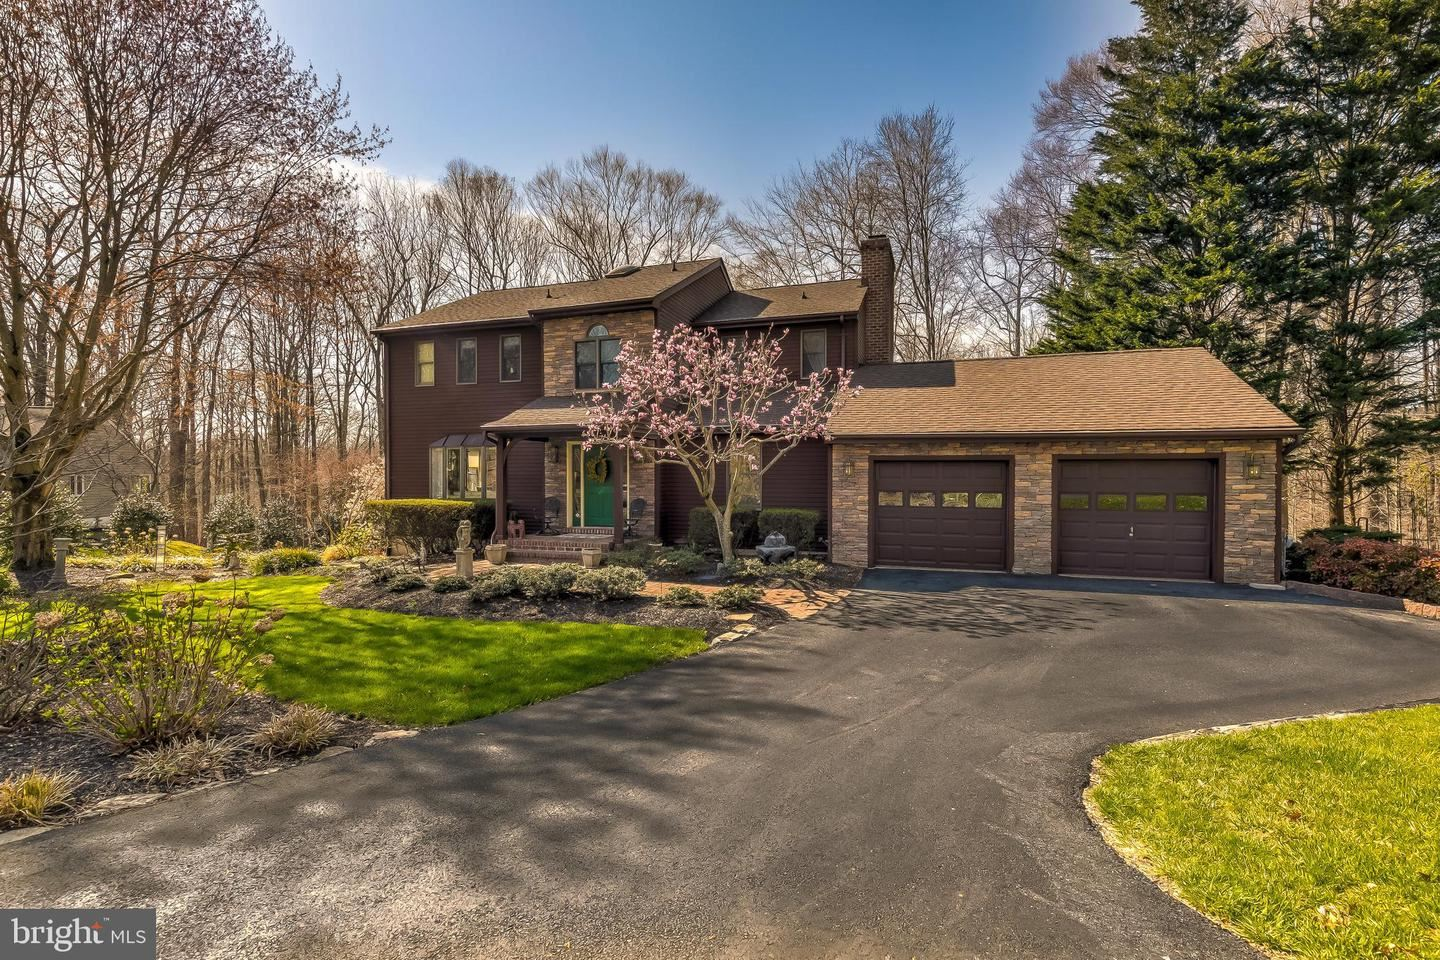 1136 STARMOUNT CT, Bel Air, MD 21015 - MLS#: MDHR258516